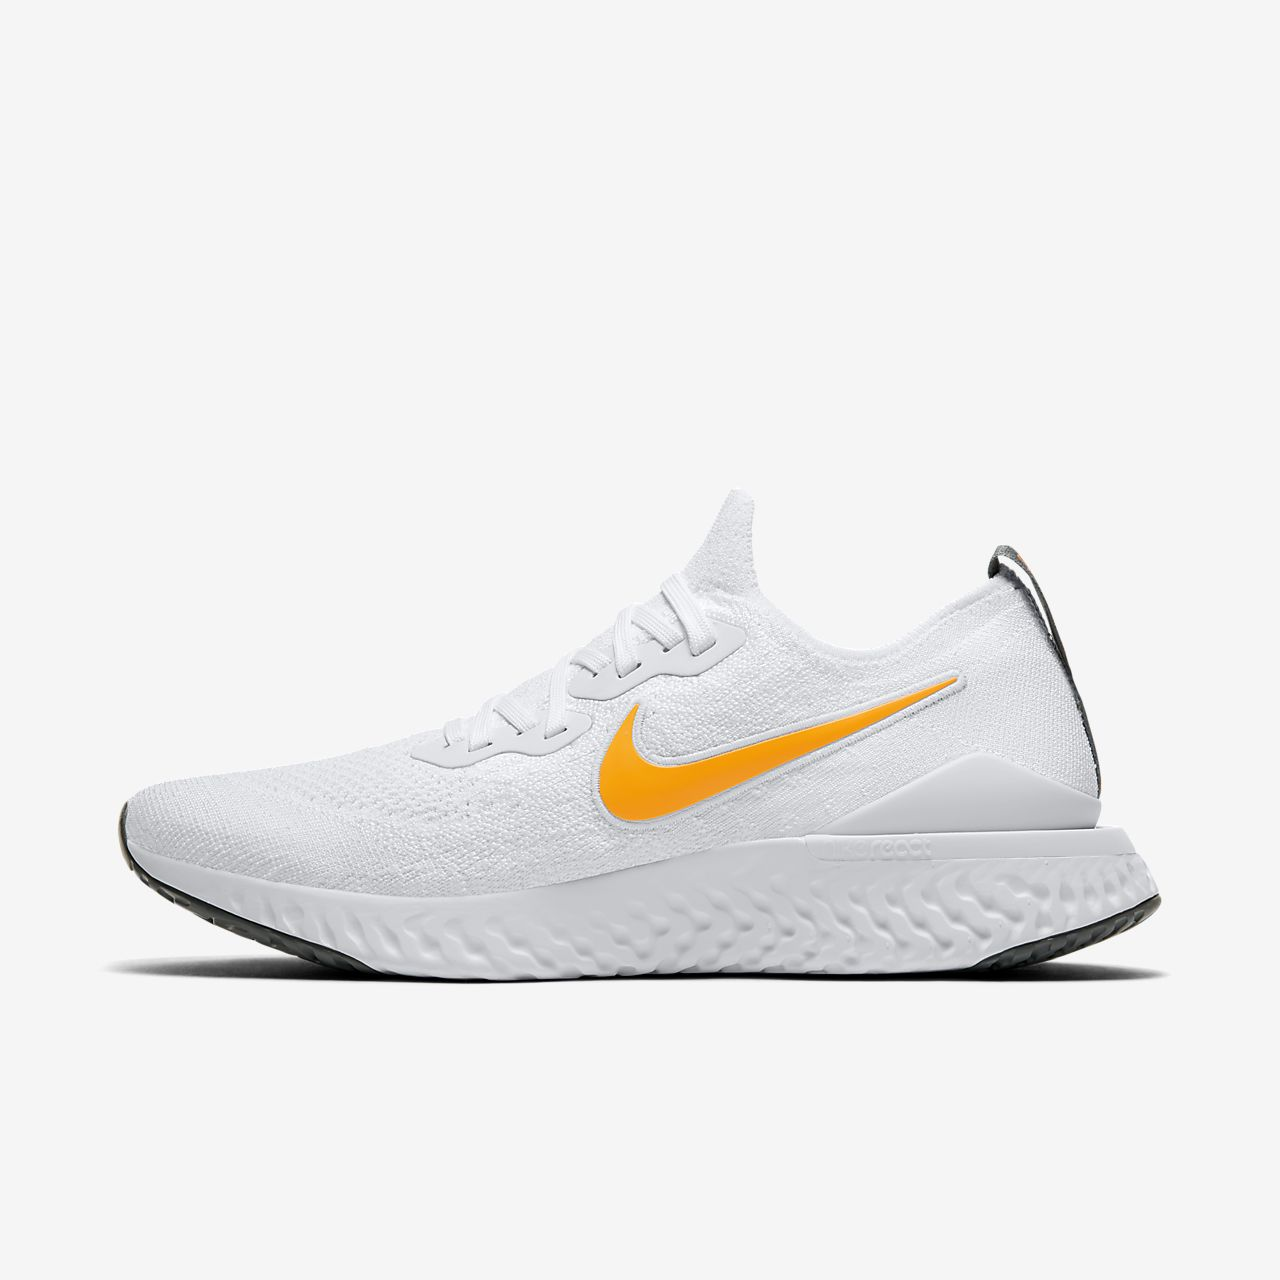 9d498d7f0ab9 Nike Epic React Flyknit 2 Men s Running Shoe. Nike.com DK